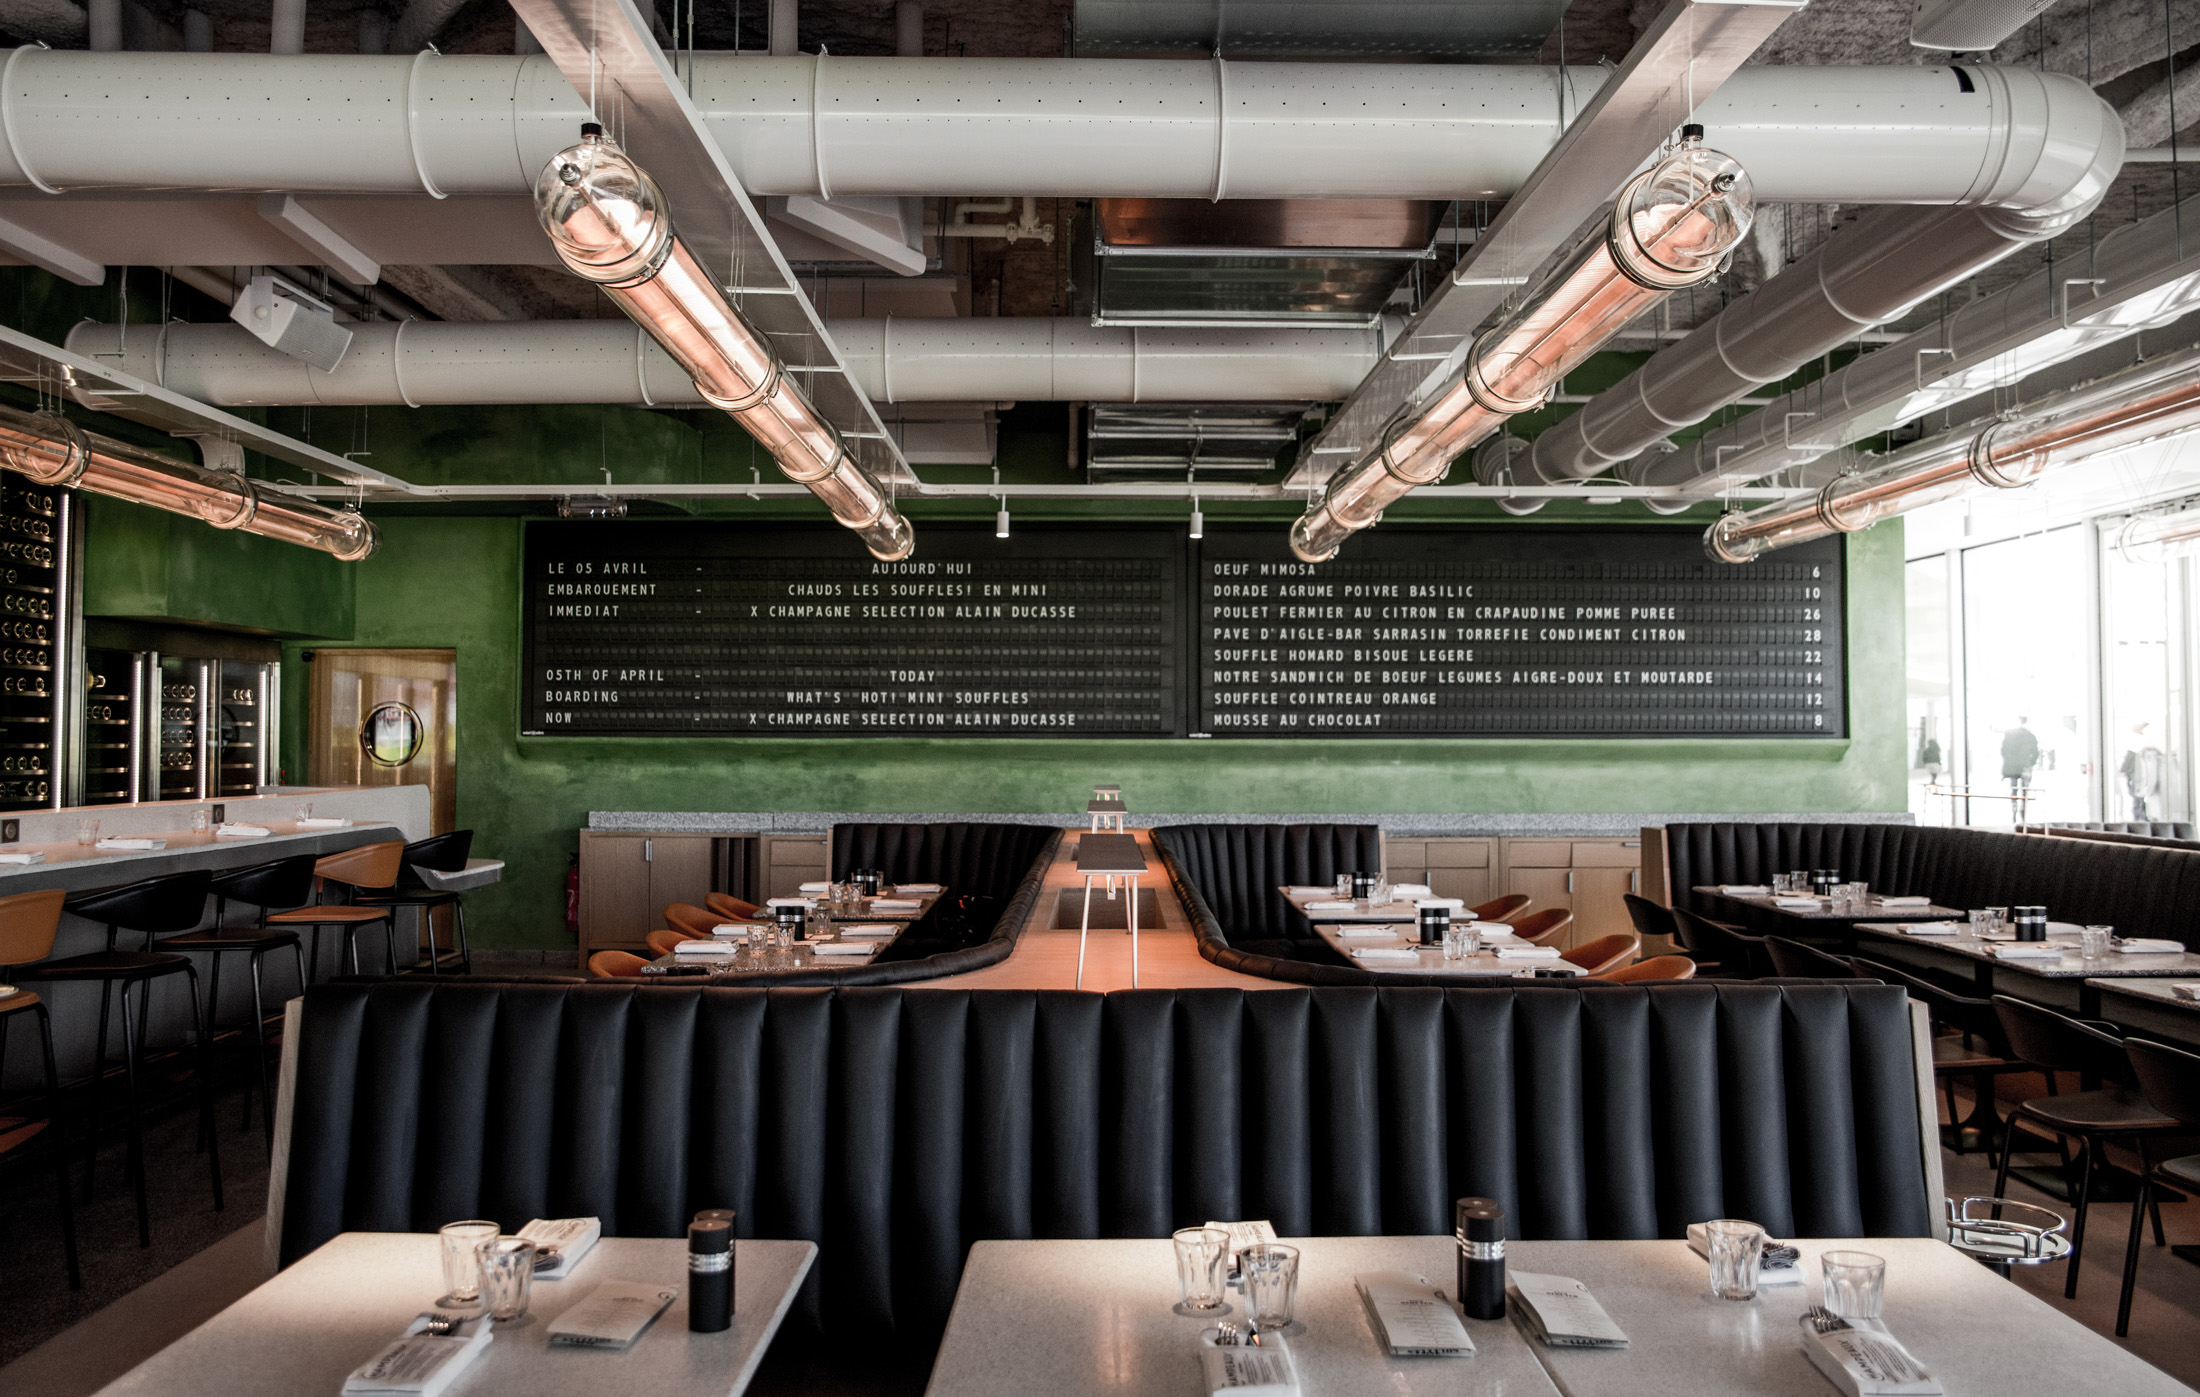 Find Out Why We Love Industrial Style Restaurants So Much 2